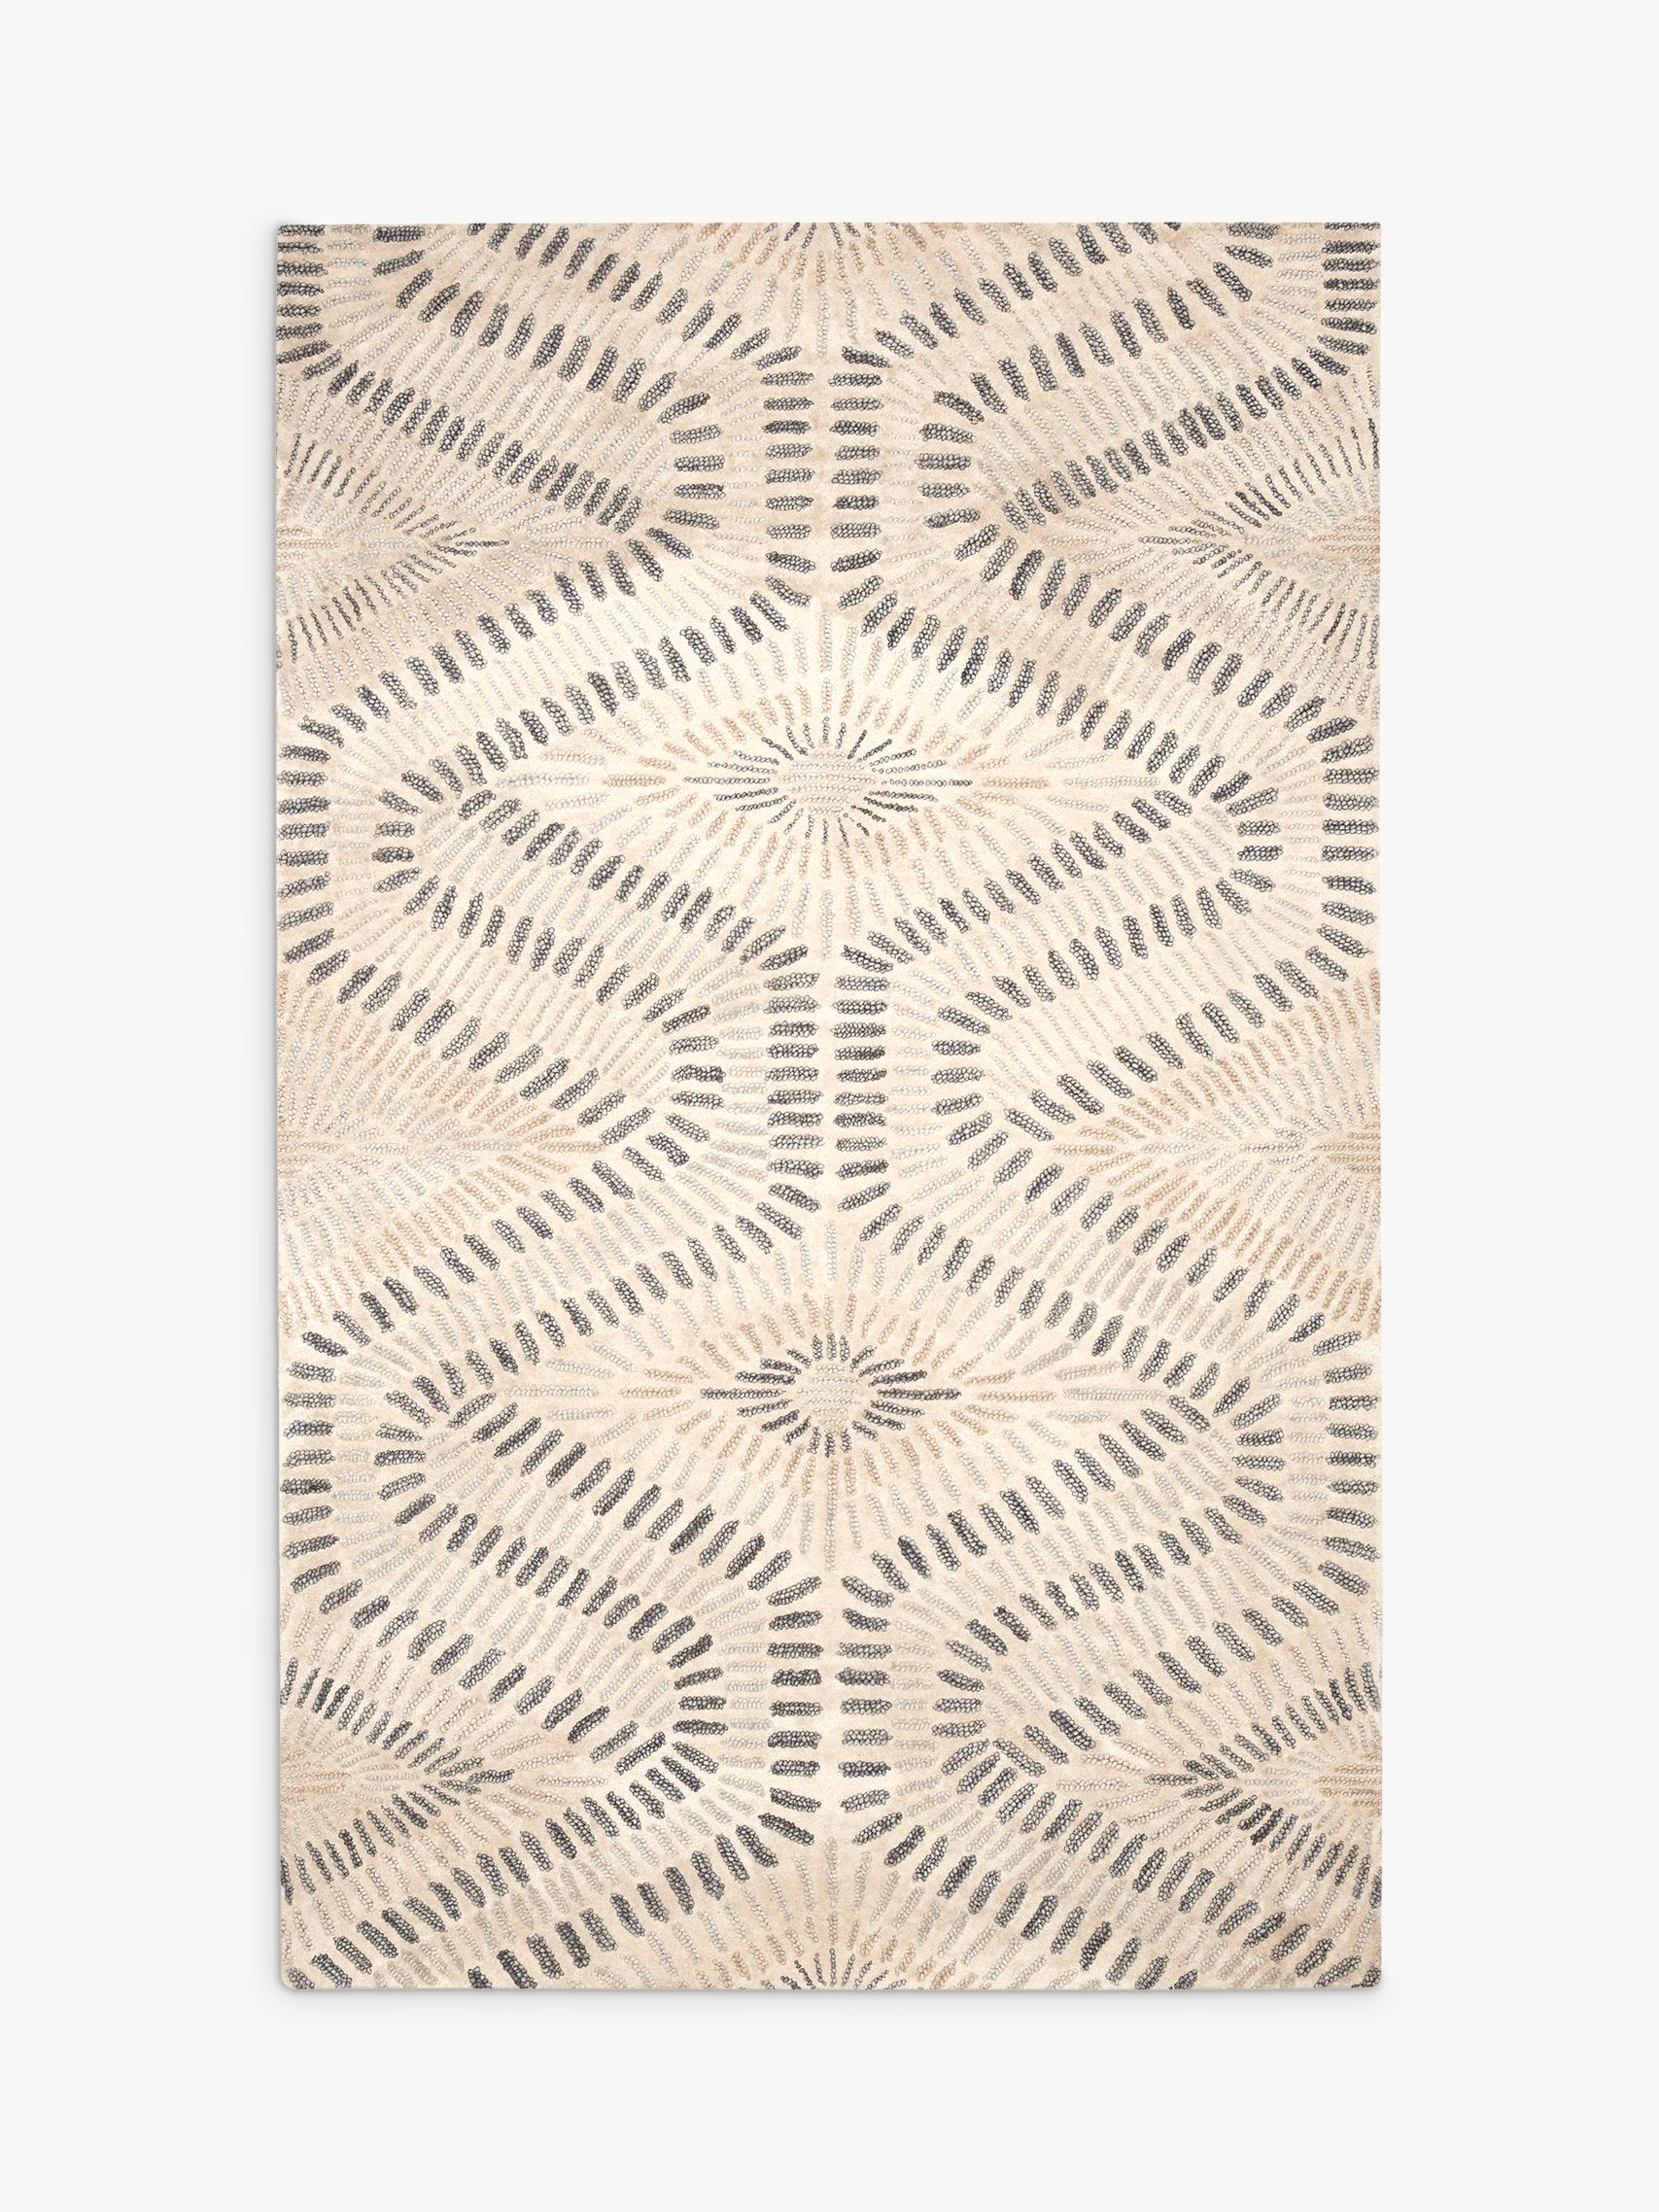 Pottery Barn Kids Safari Wool Rug, Grey